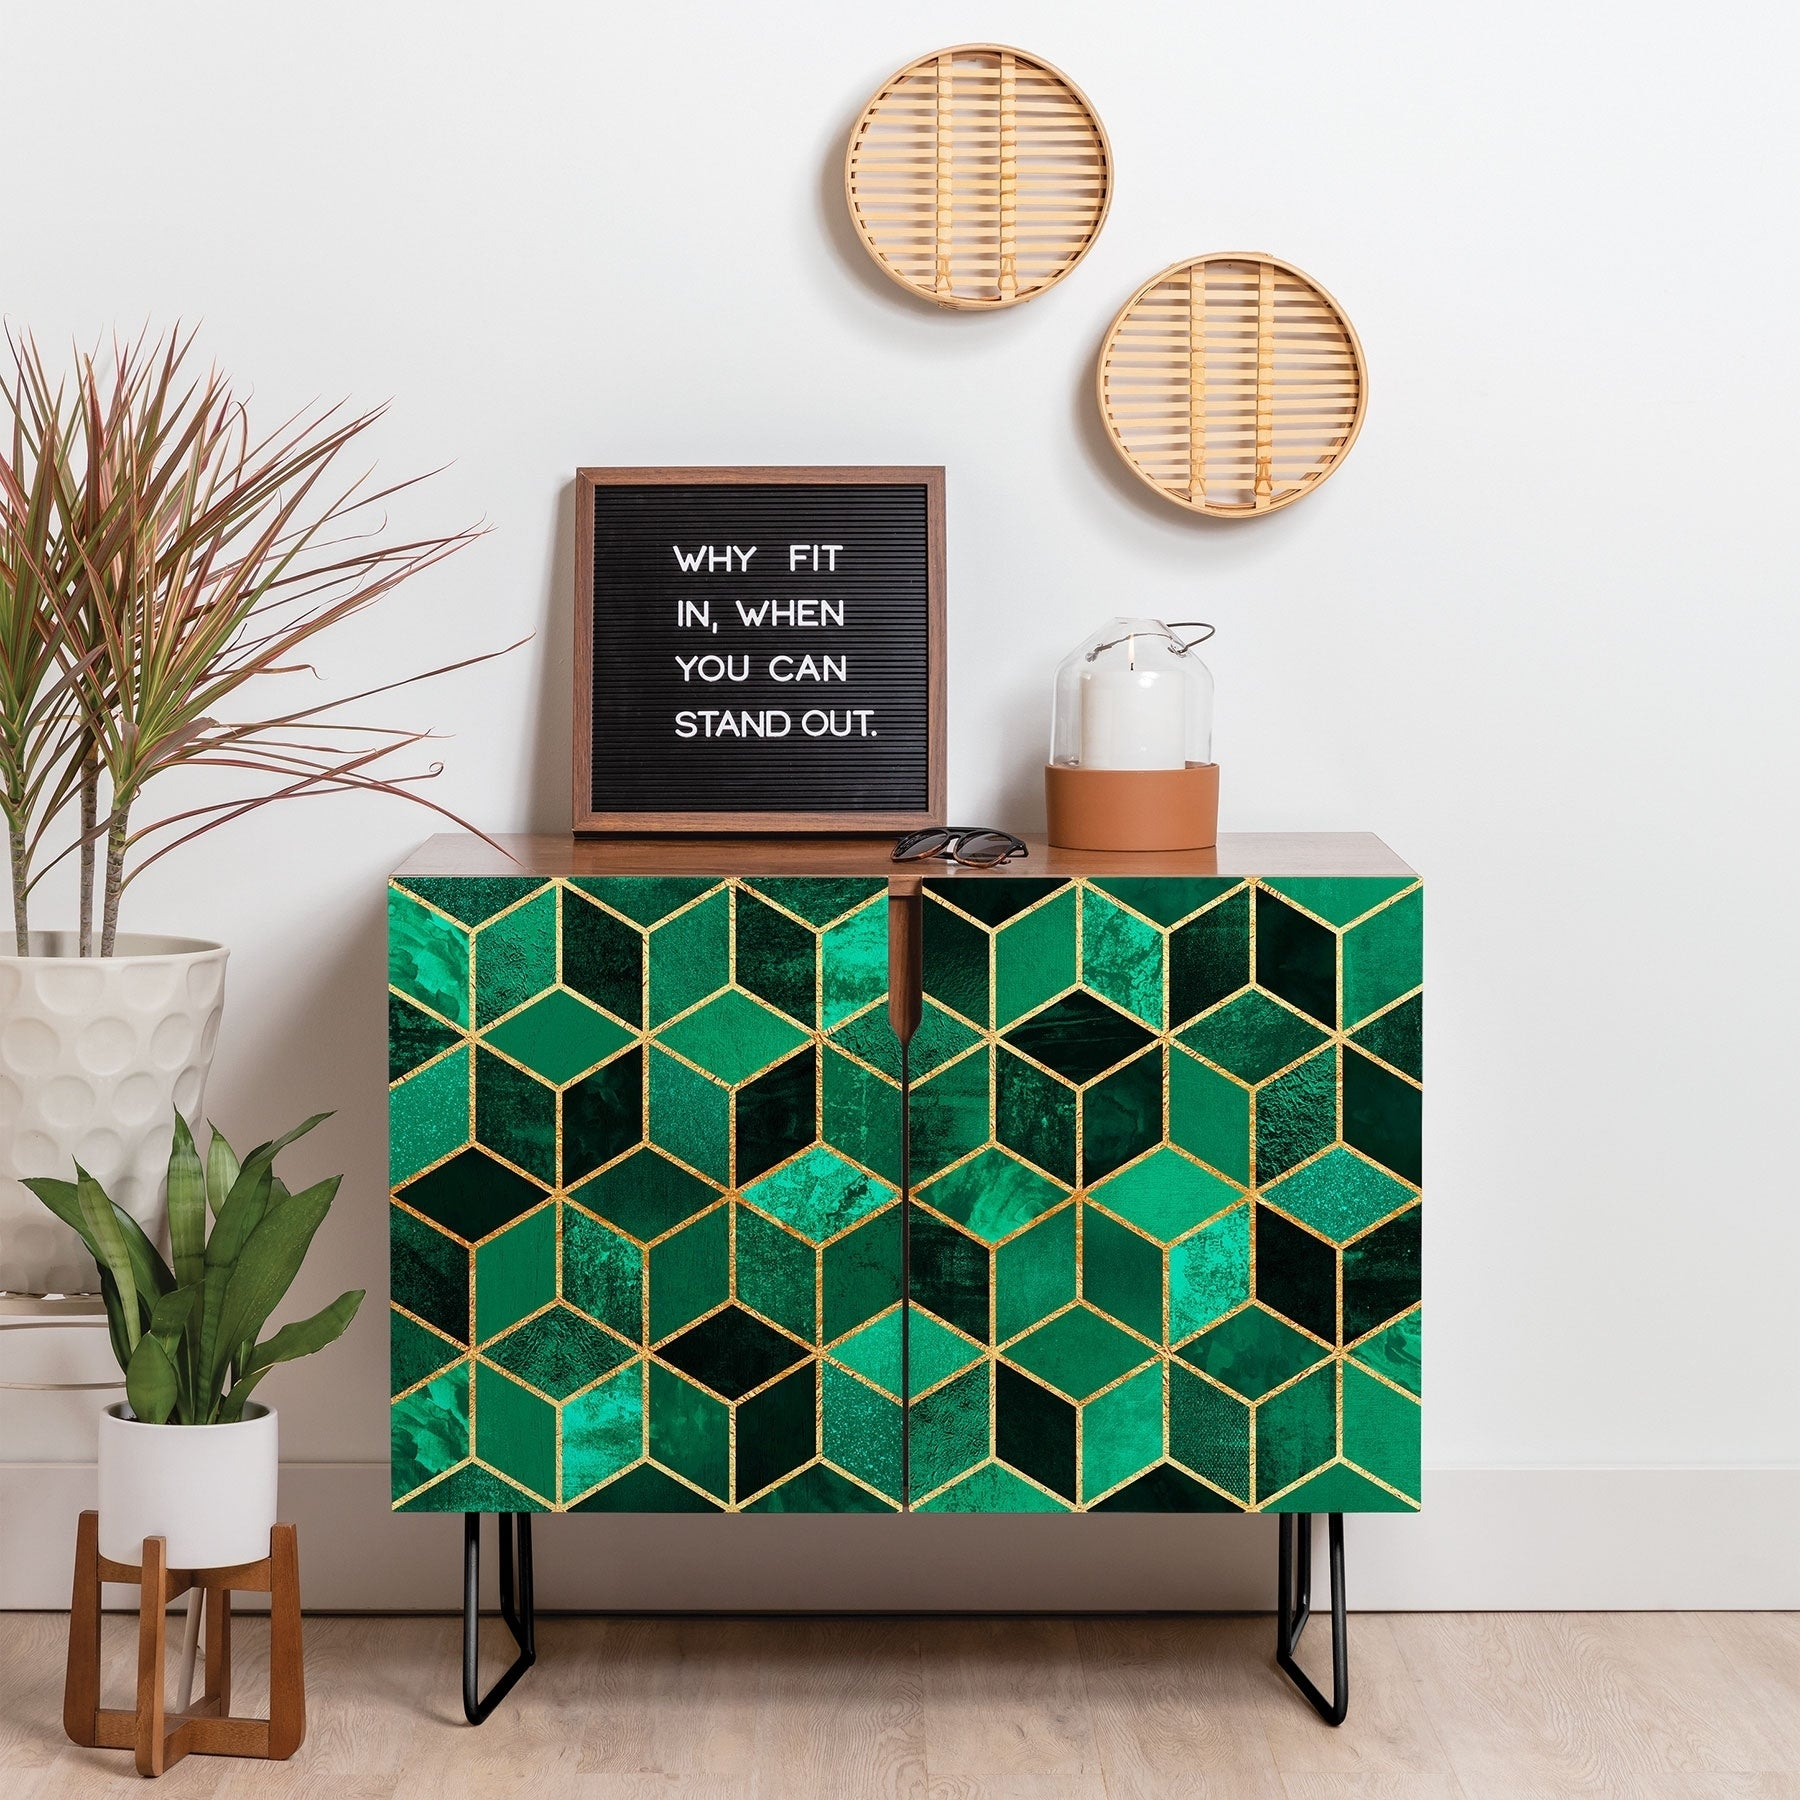 Deny Designs Emerald Cubes Credenza (Birch Or Walnut, 2 Leg Options) Throughout Emerald Cubes Credenzas (Gallery 1 of 30)